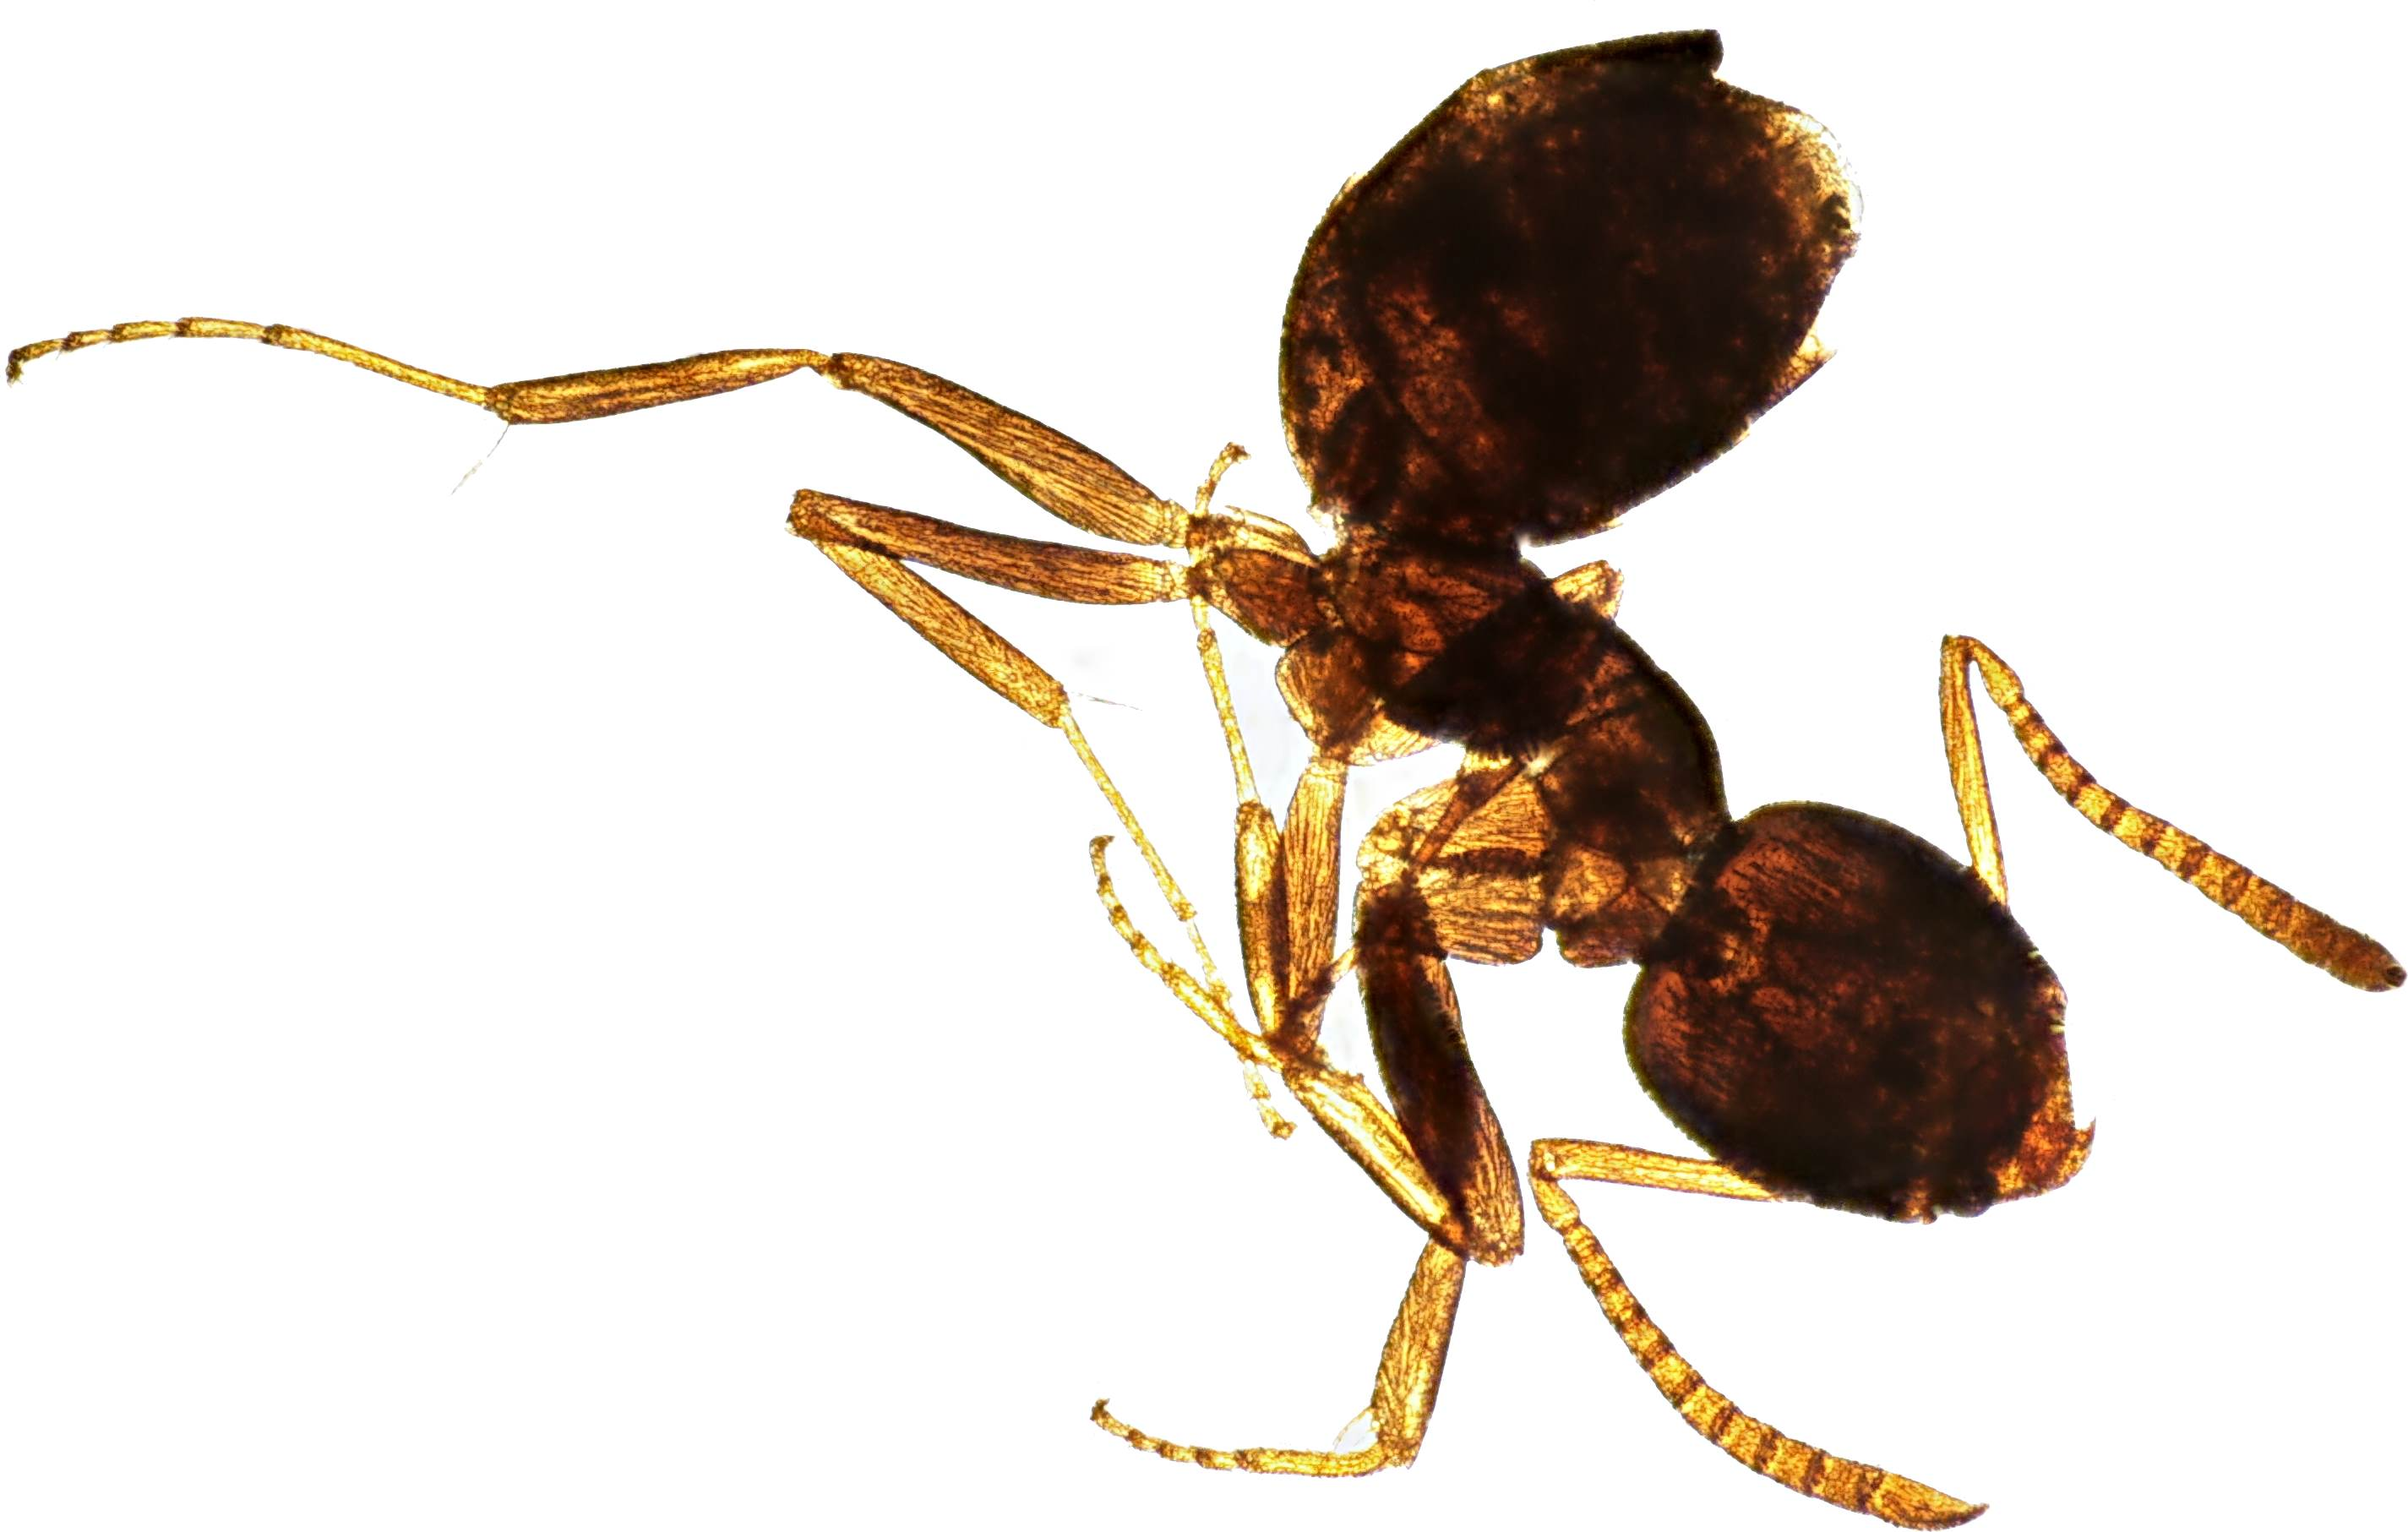 Ant Millie preserved in alcohol and fructose